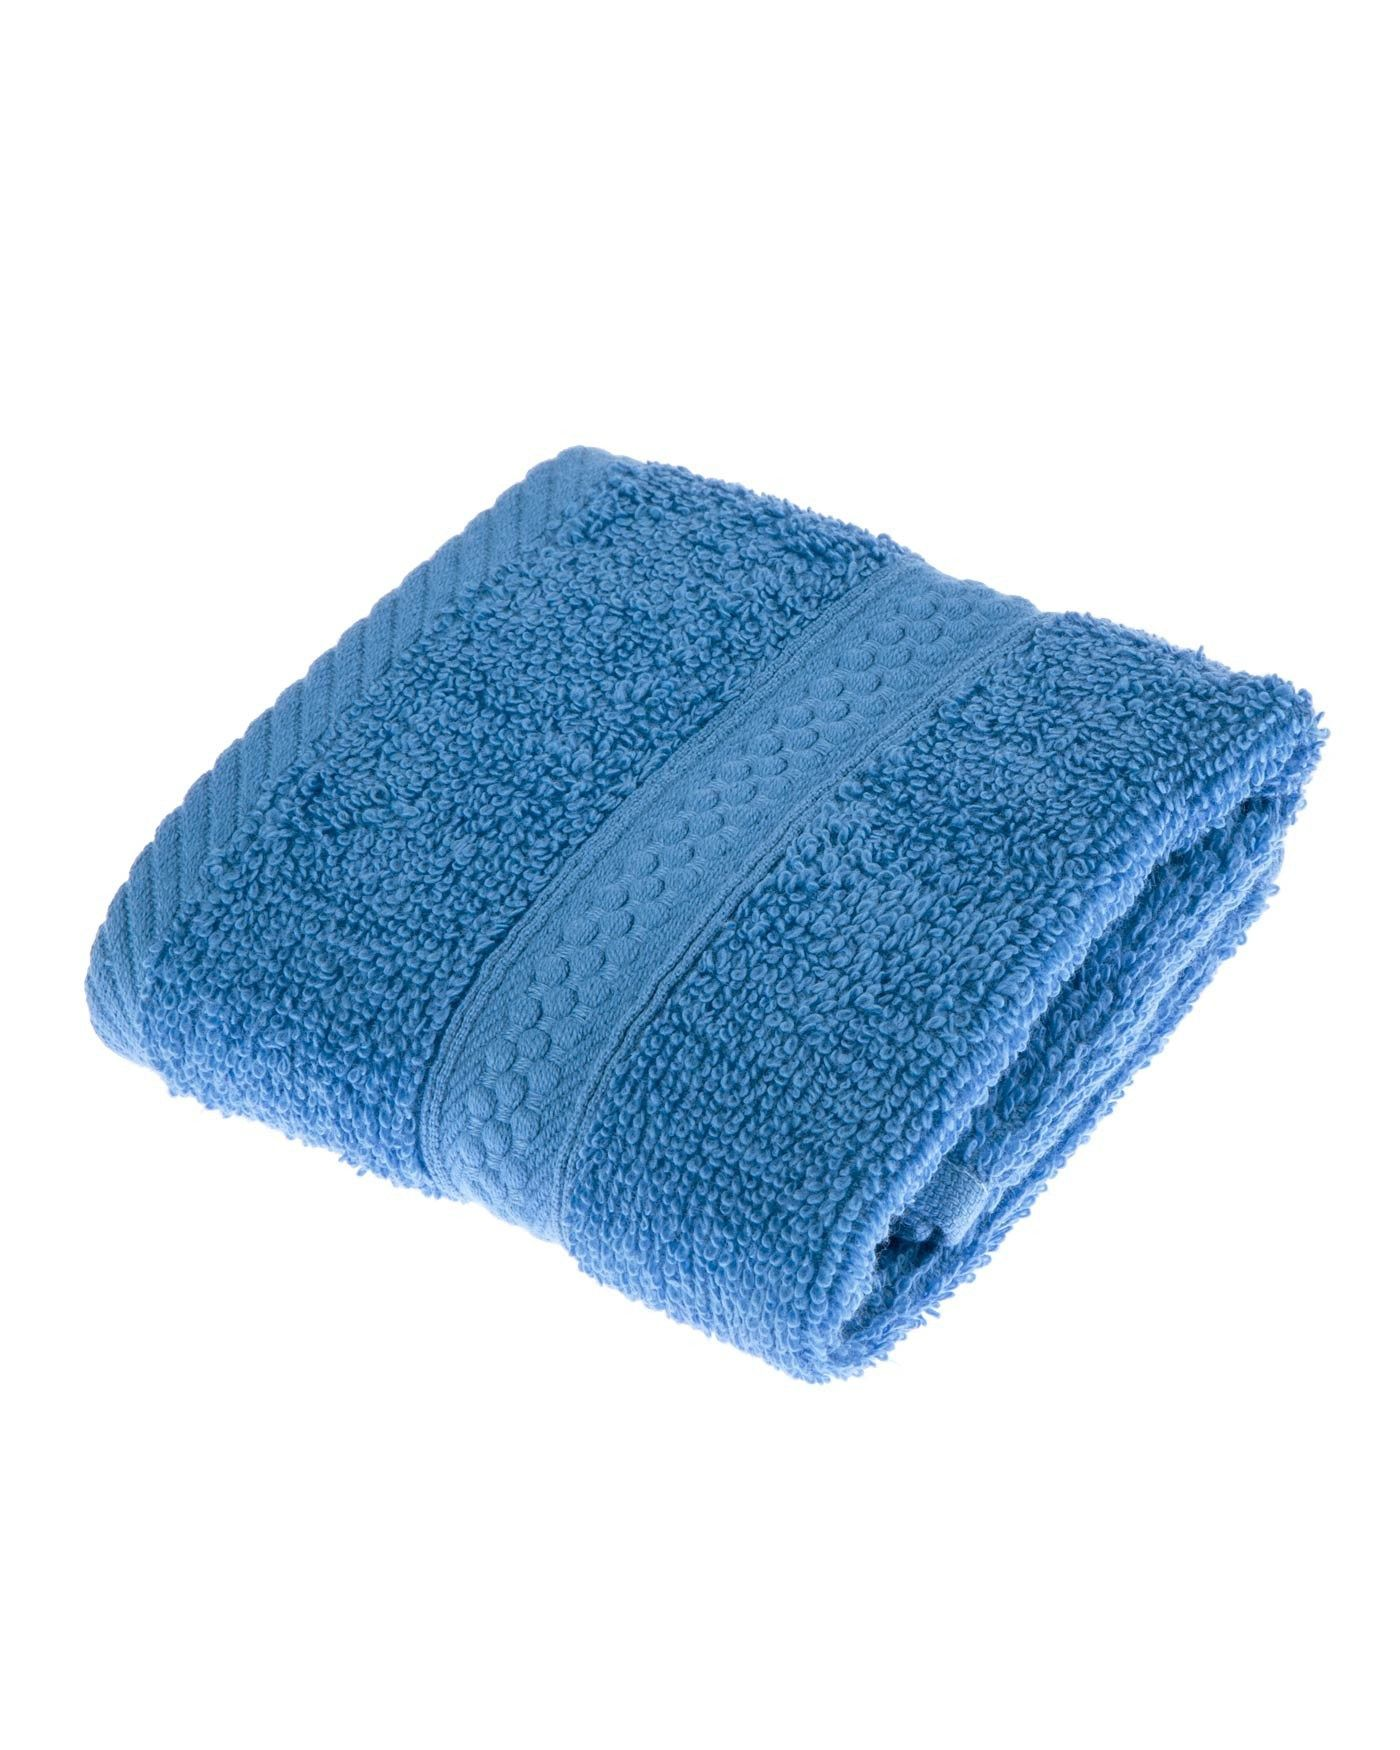 These Turkish Cotton Towels Are A Fantastic Choice If You Are